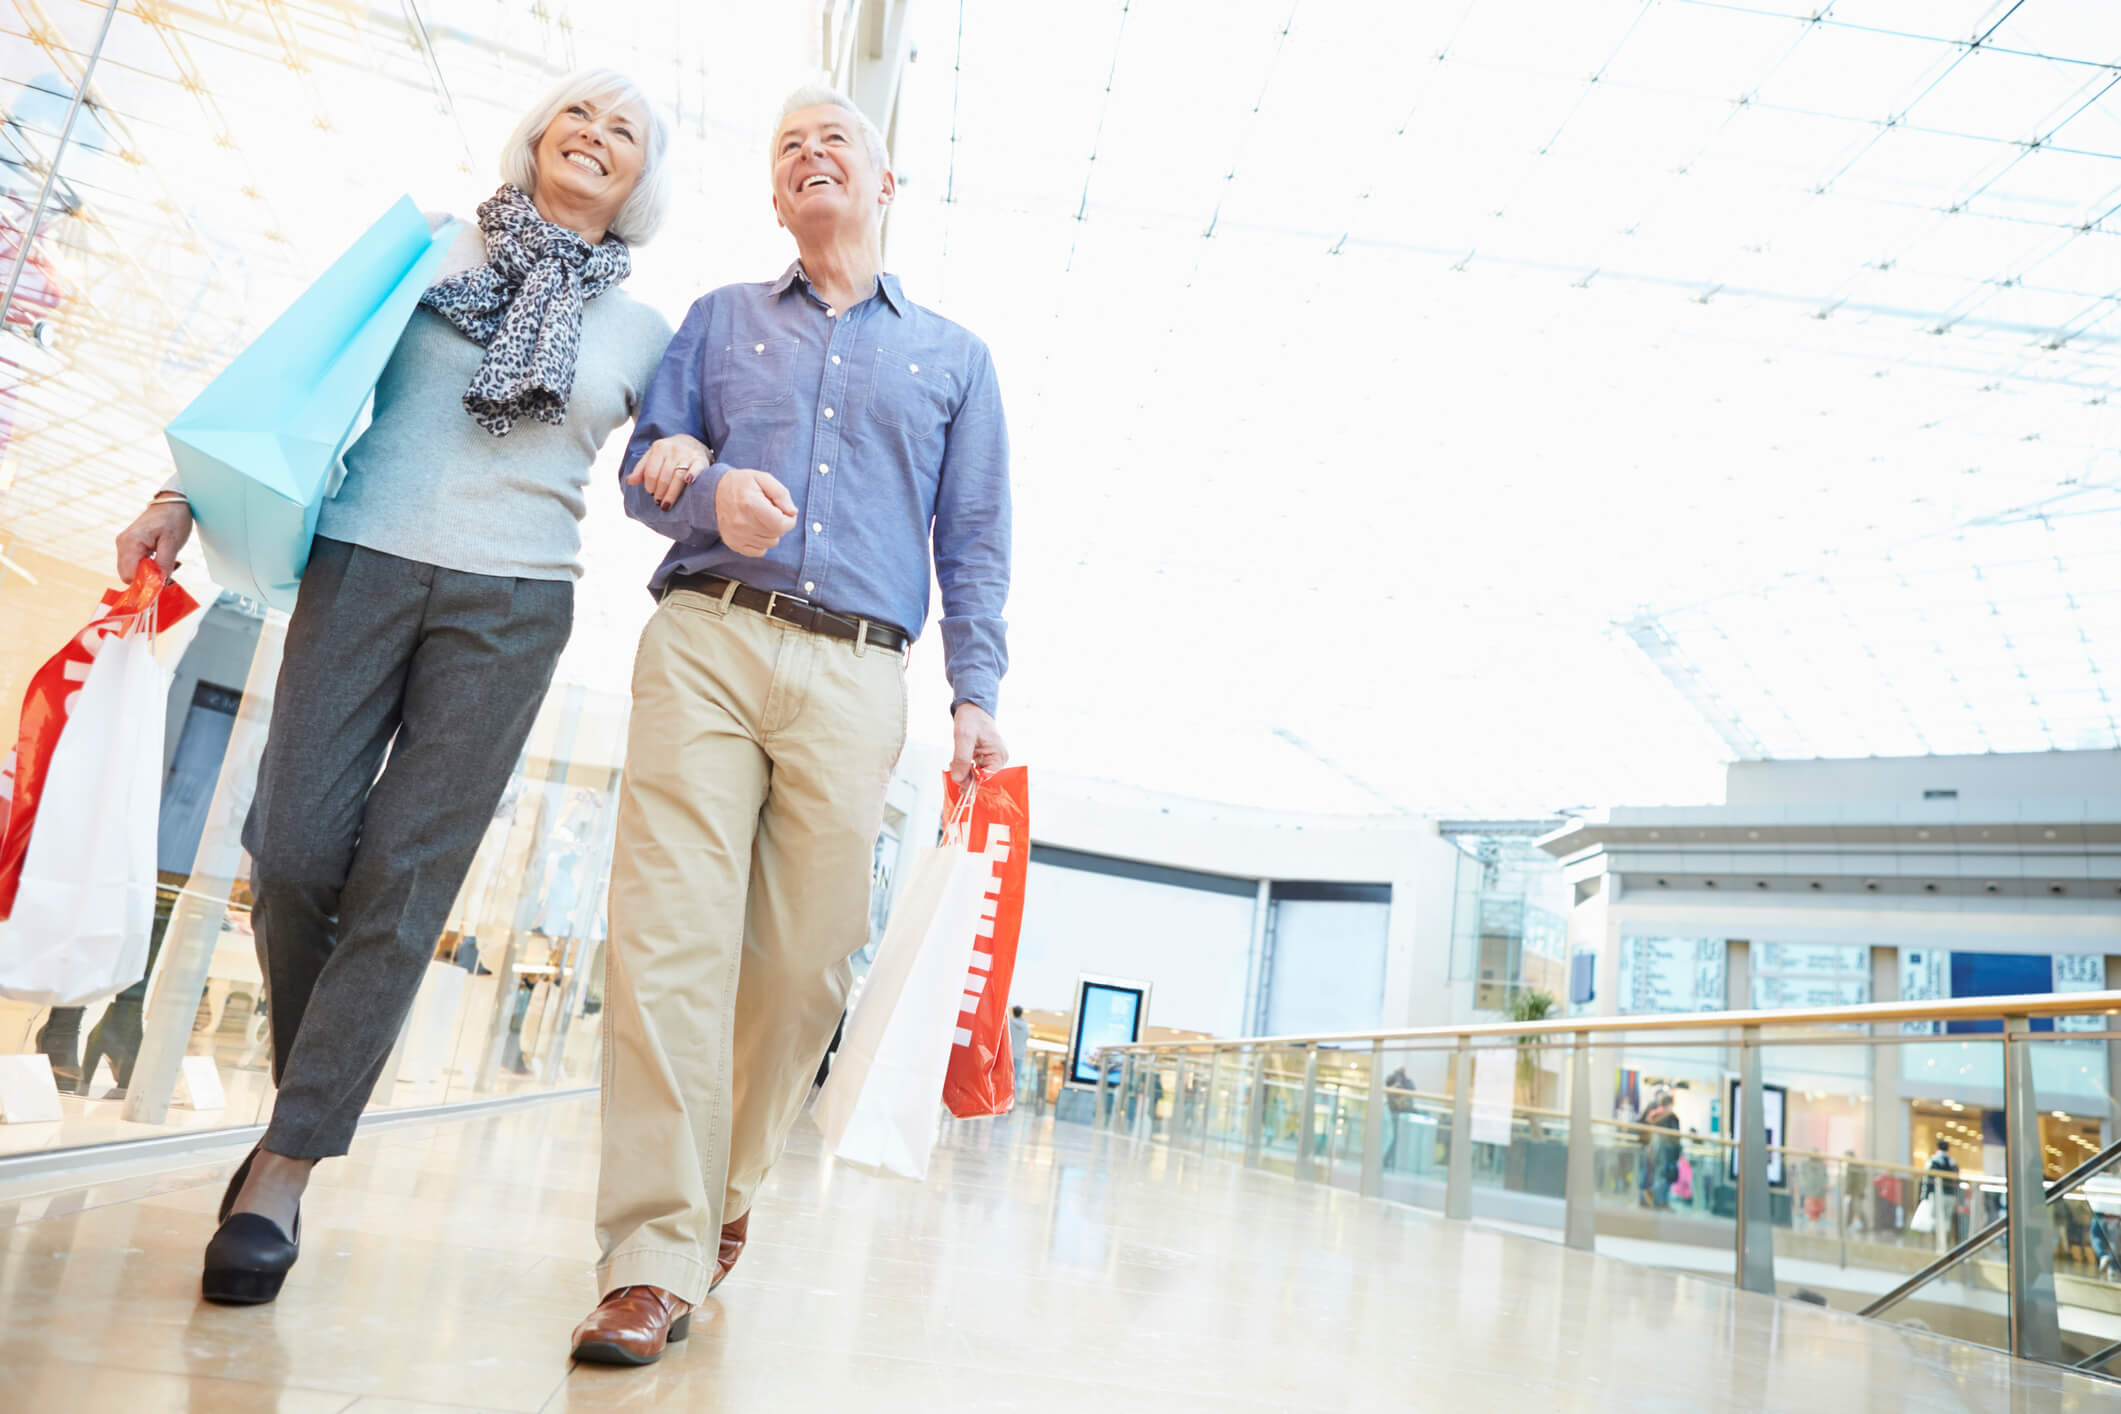 Top 8 Senior Citizen Discounts in the Fort Worth Area